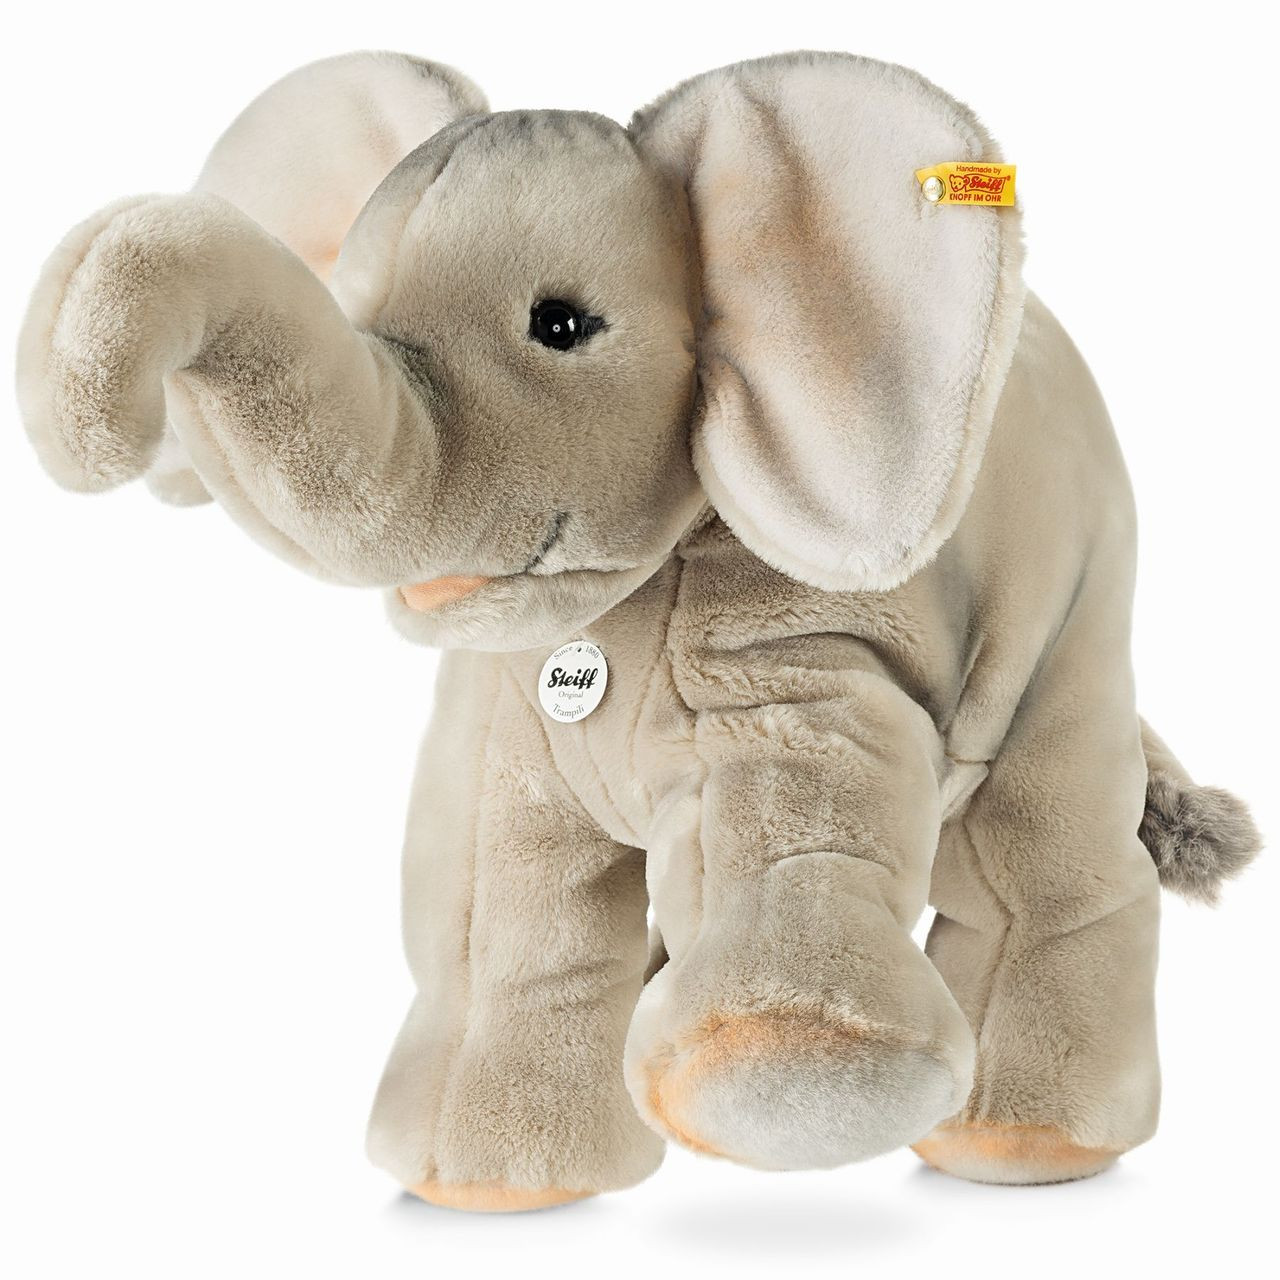 Benny the Elephant with Gift Box by Steiff EAN 084096